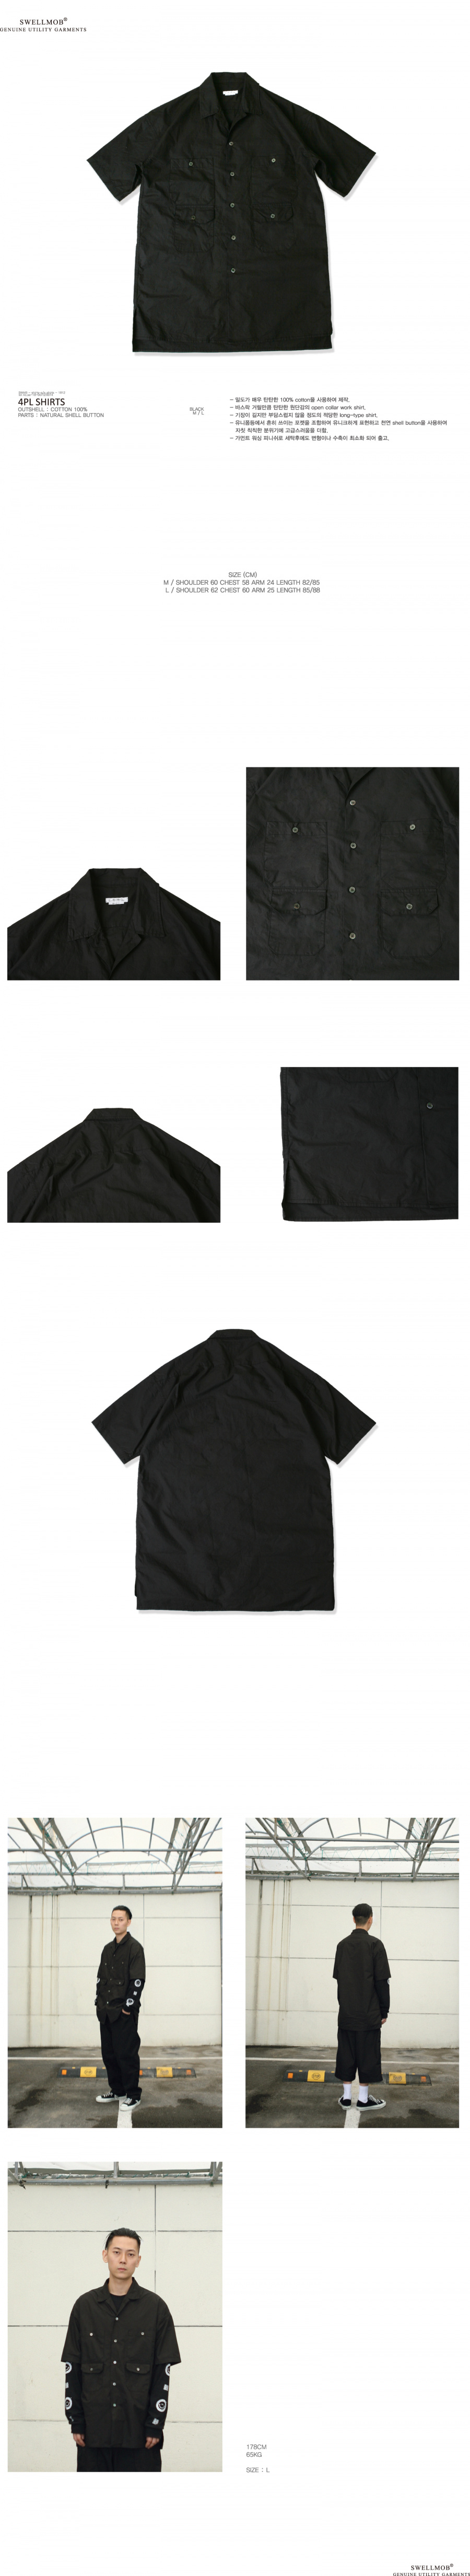 스웰맙(SWELLMOB) 4PL SHIRTS -BLACK-